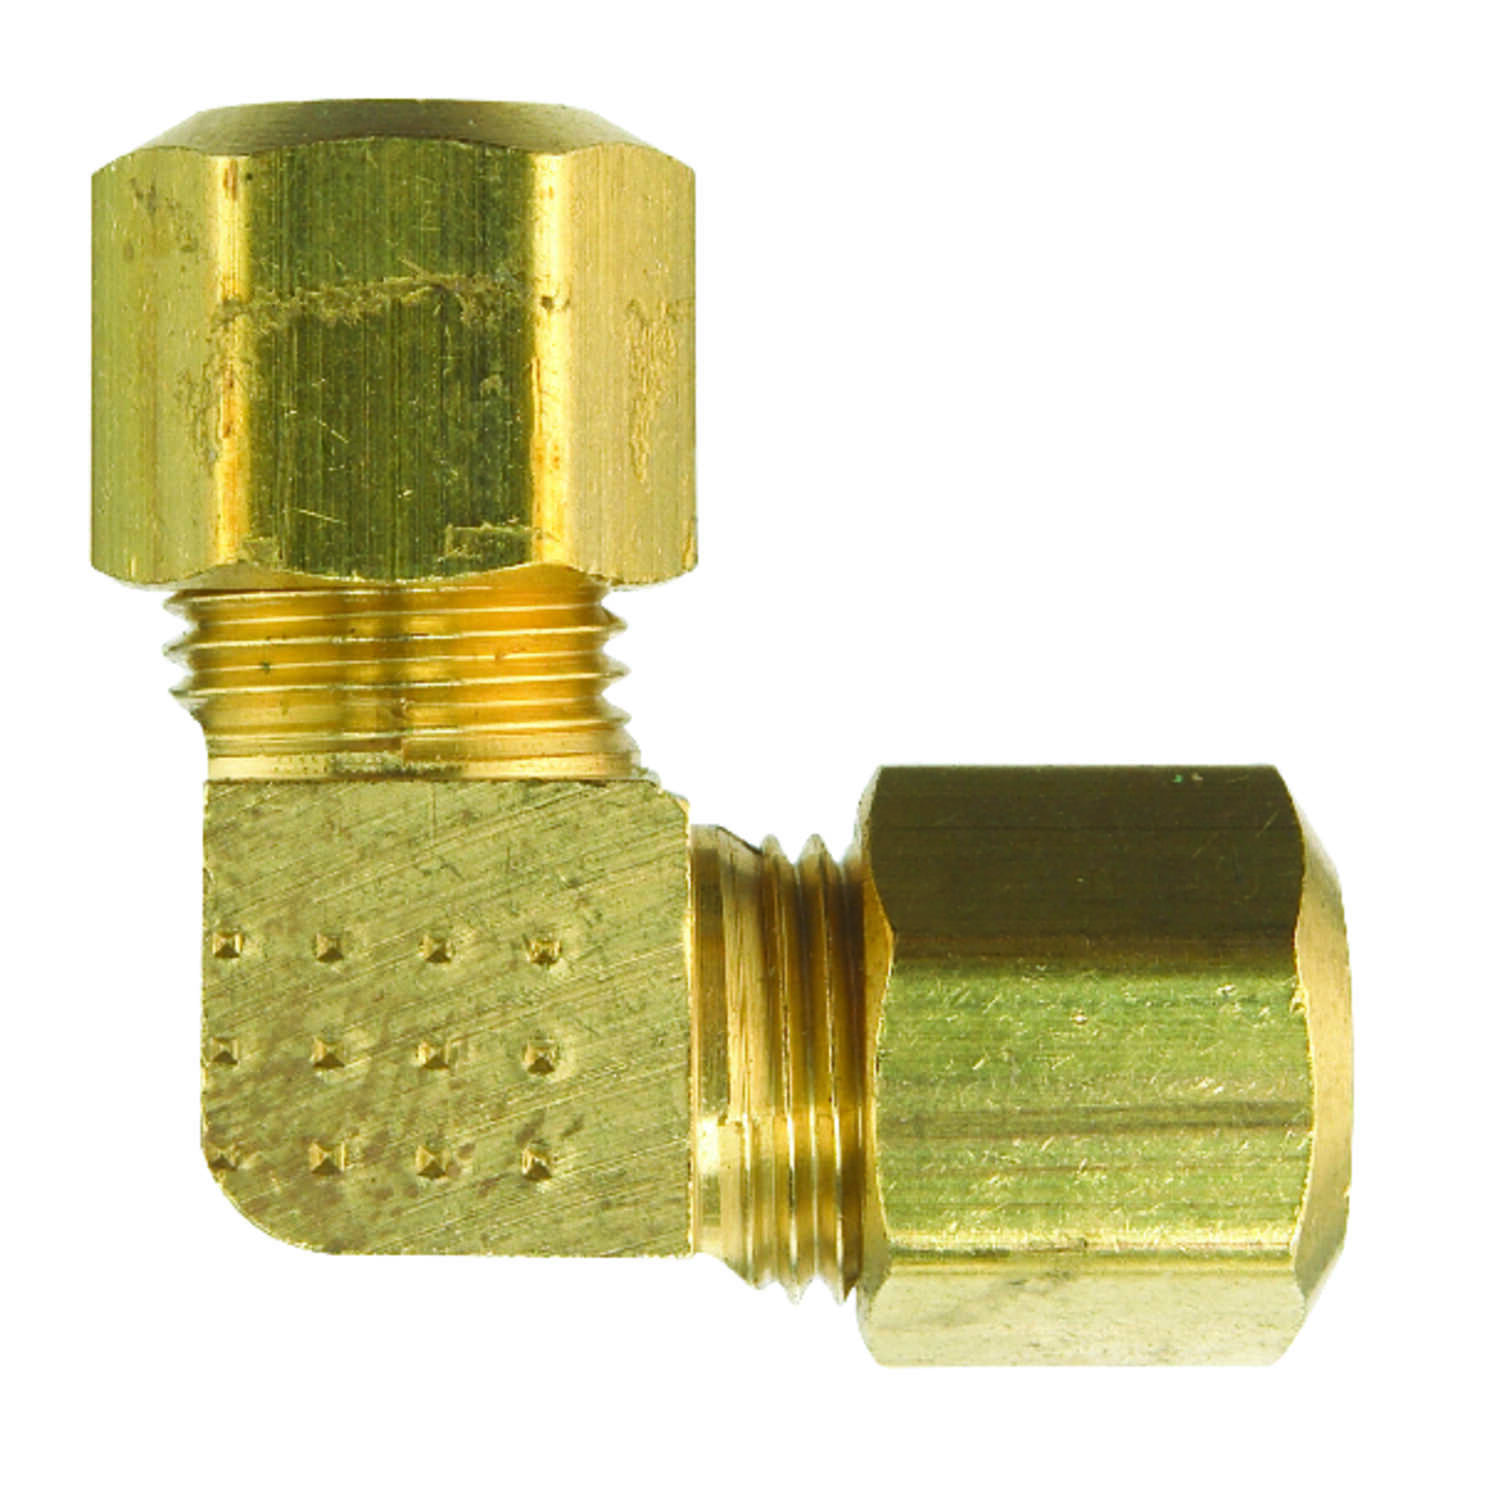 JMF  1/4 in. Dia. x 1/4 in. Dia. Compression To Compression To Compression  90 deg. Yellow Brass  El